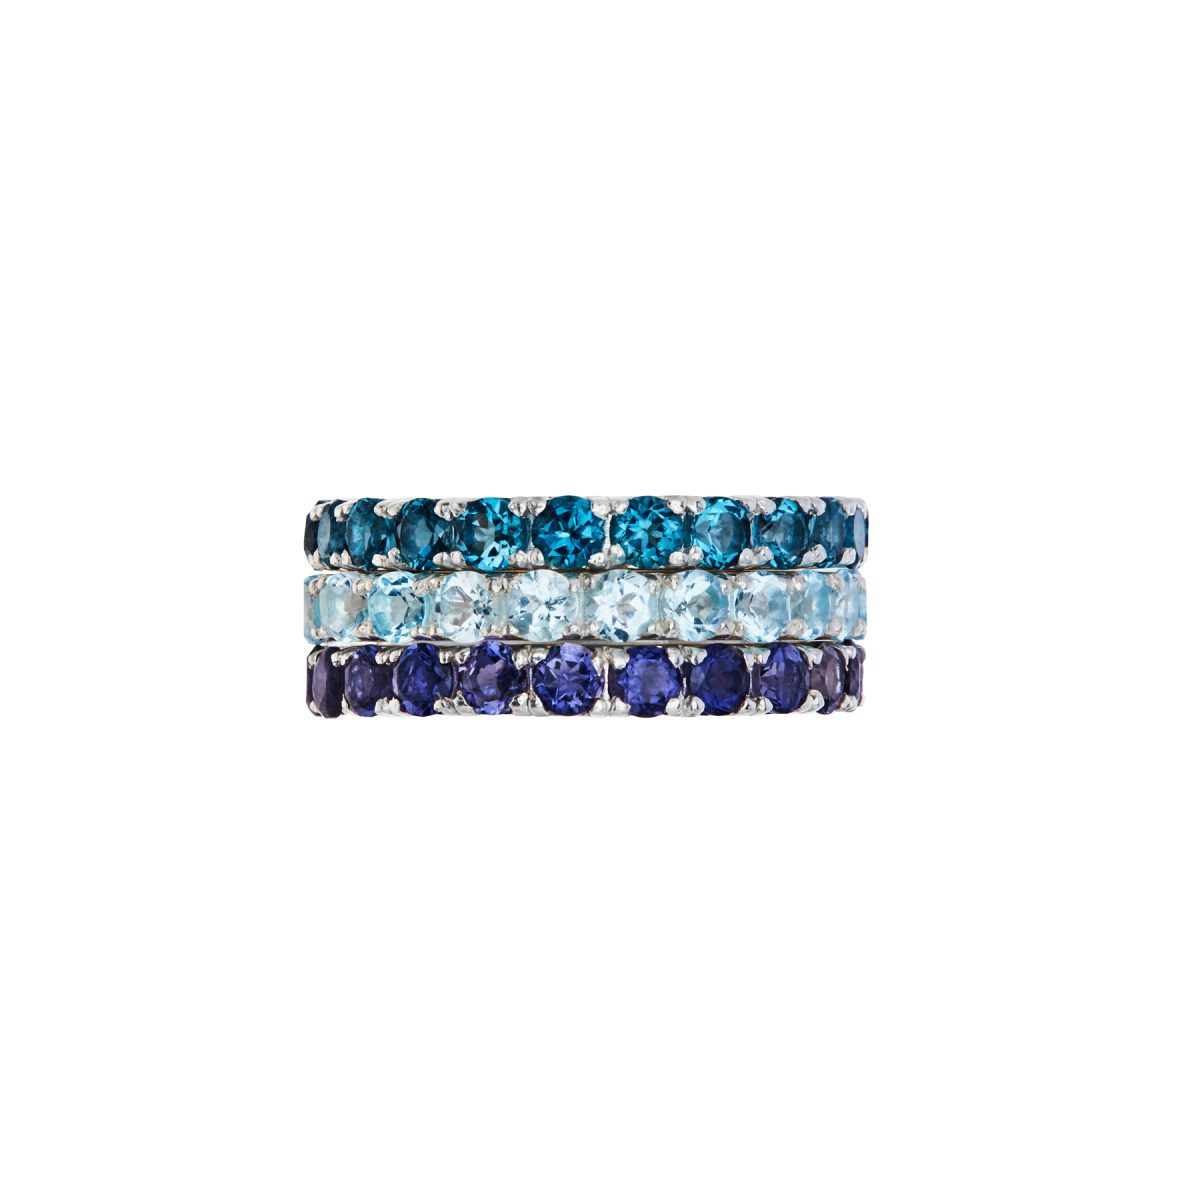 Iolite full eternity ring, London Blue Topaz full eternity ring, Sky Blue Topaz full eternity ring.